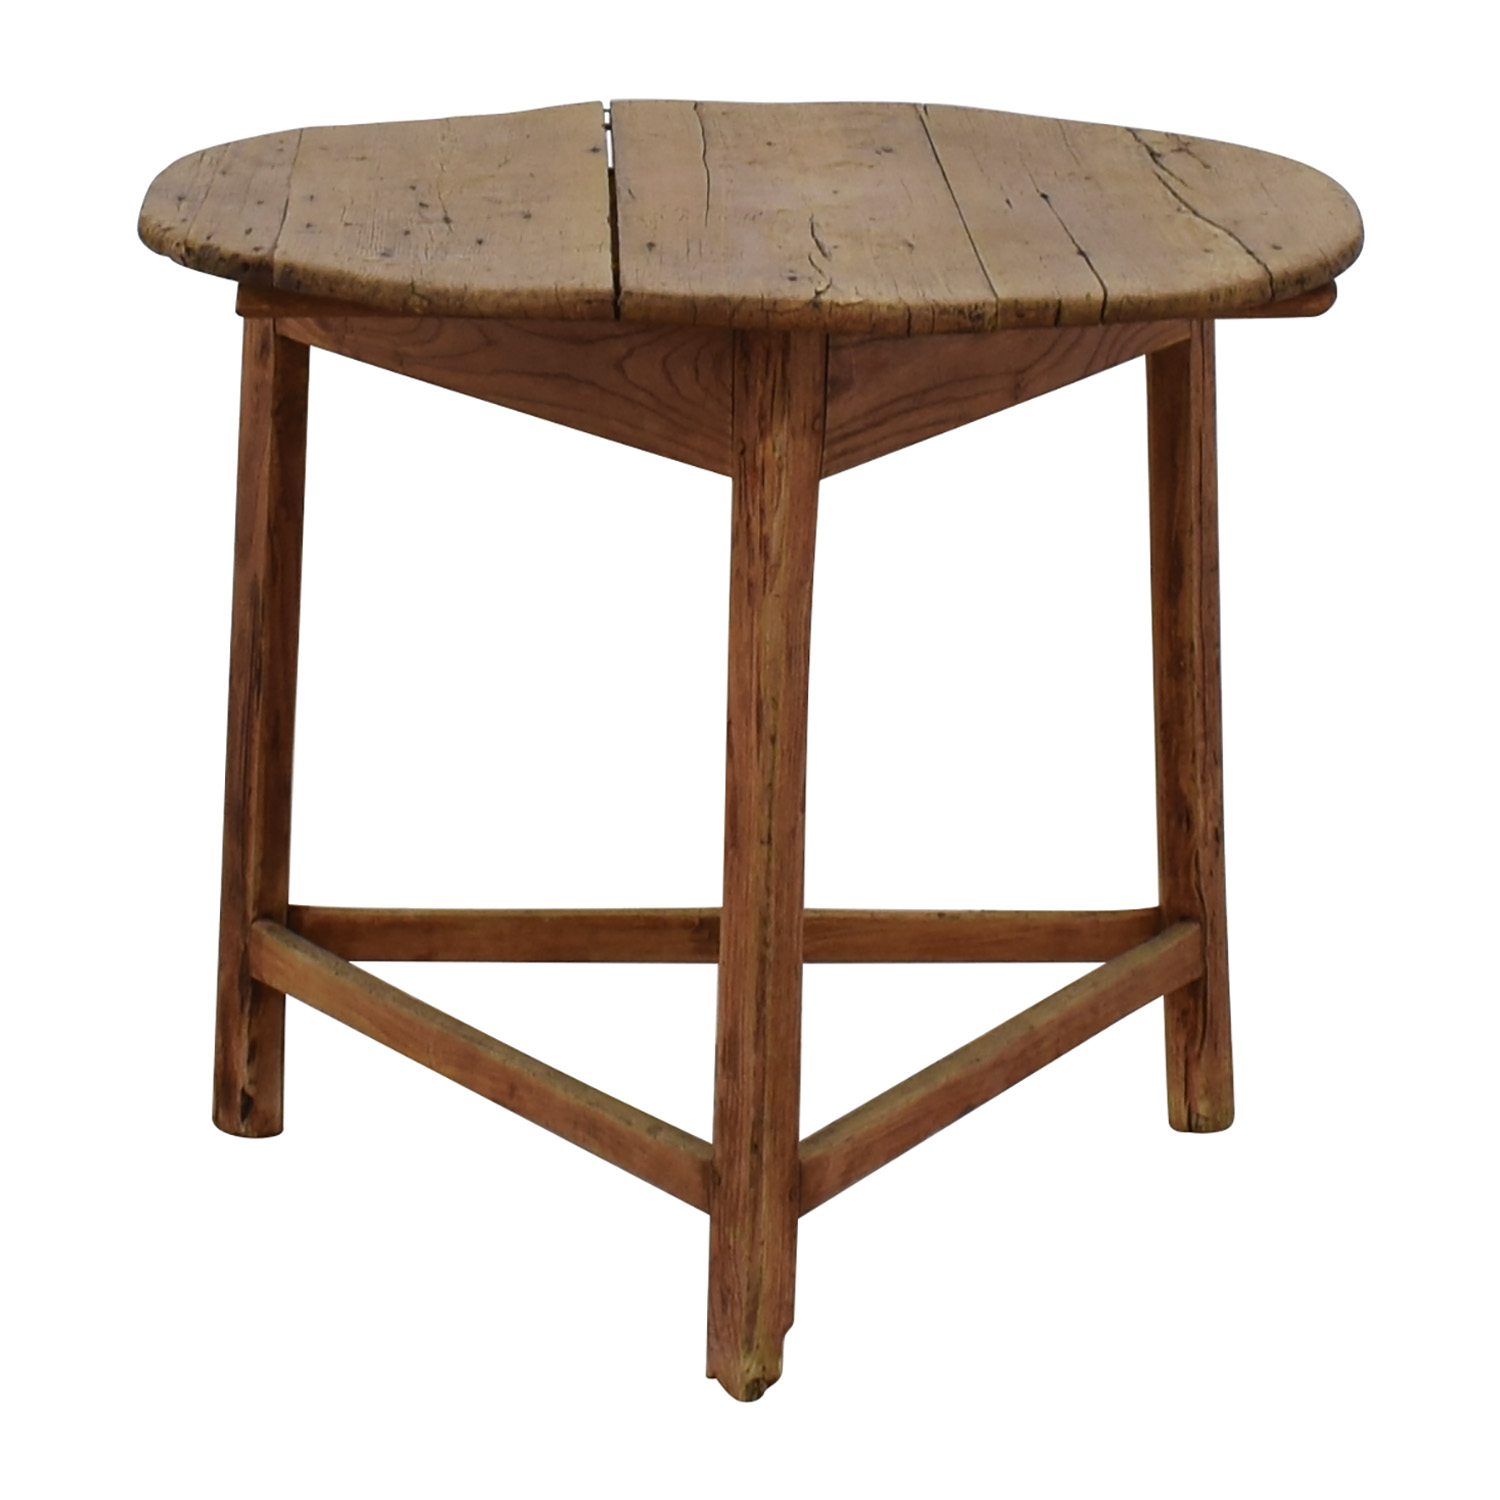 Reclaimed Wood Antique Table dimensions